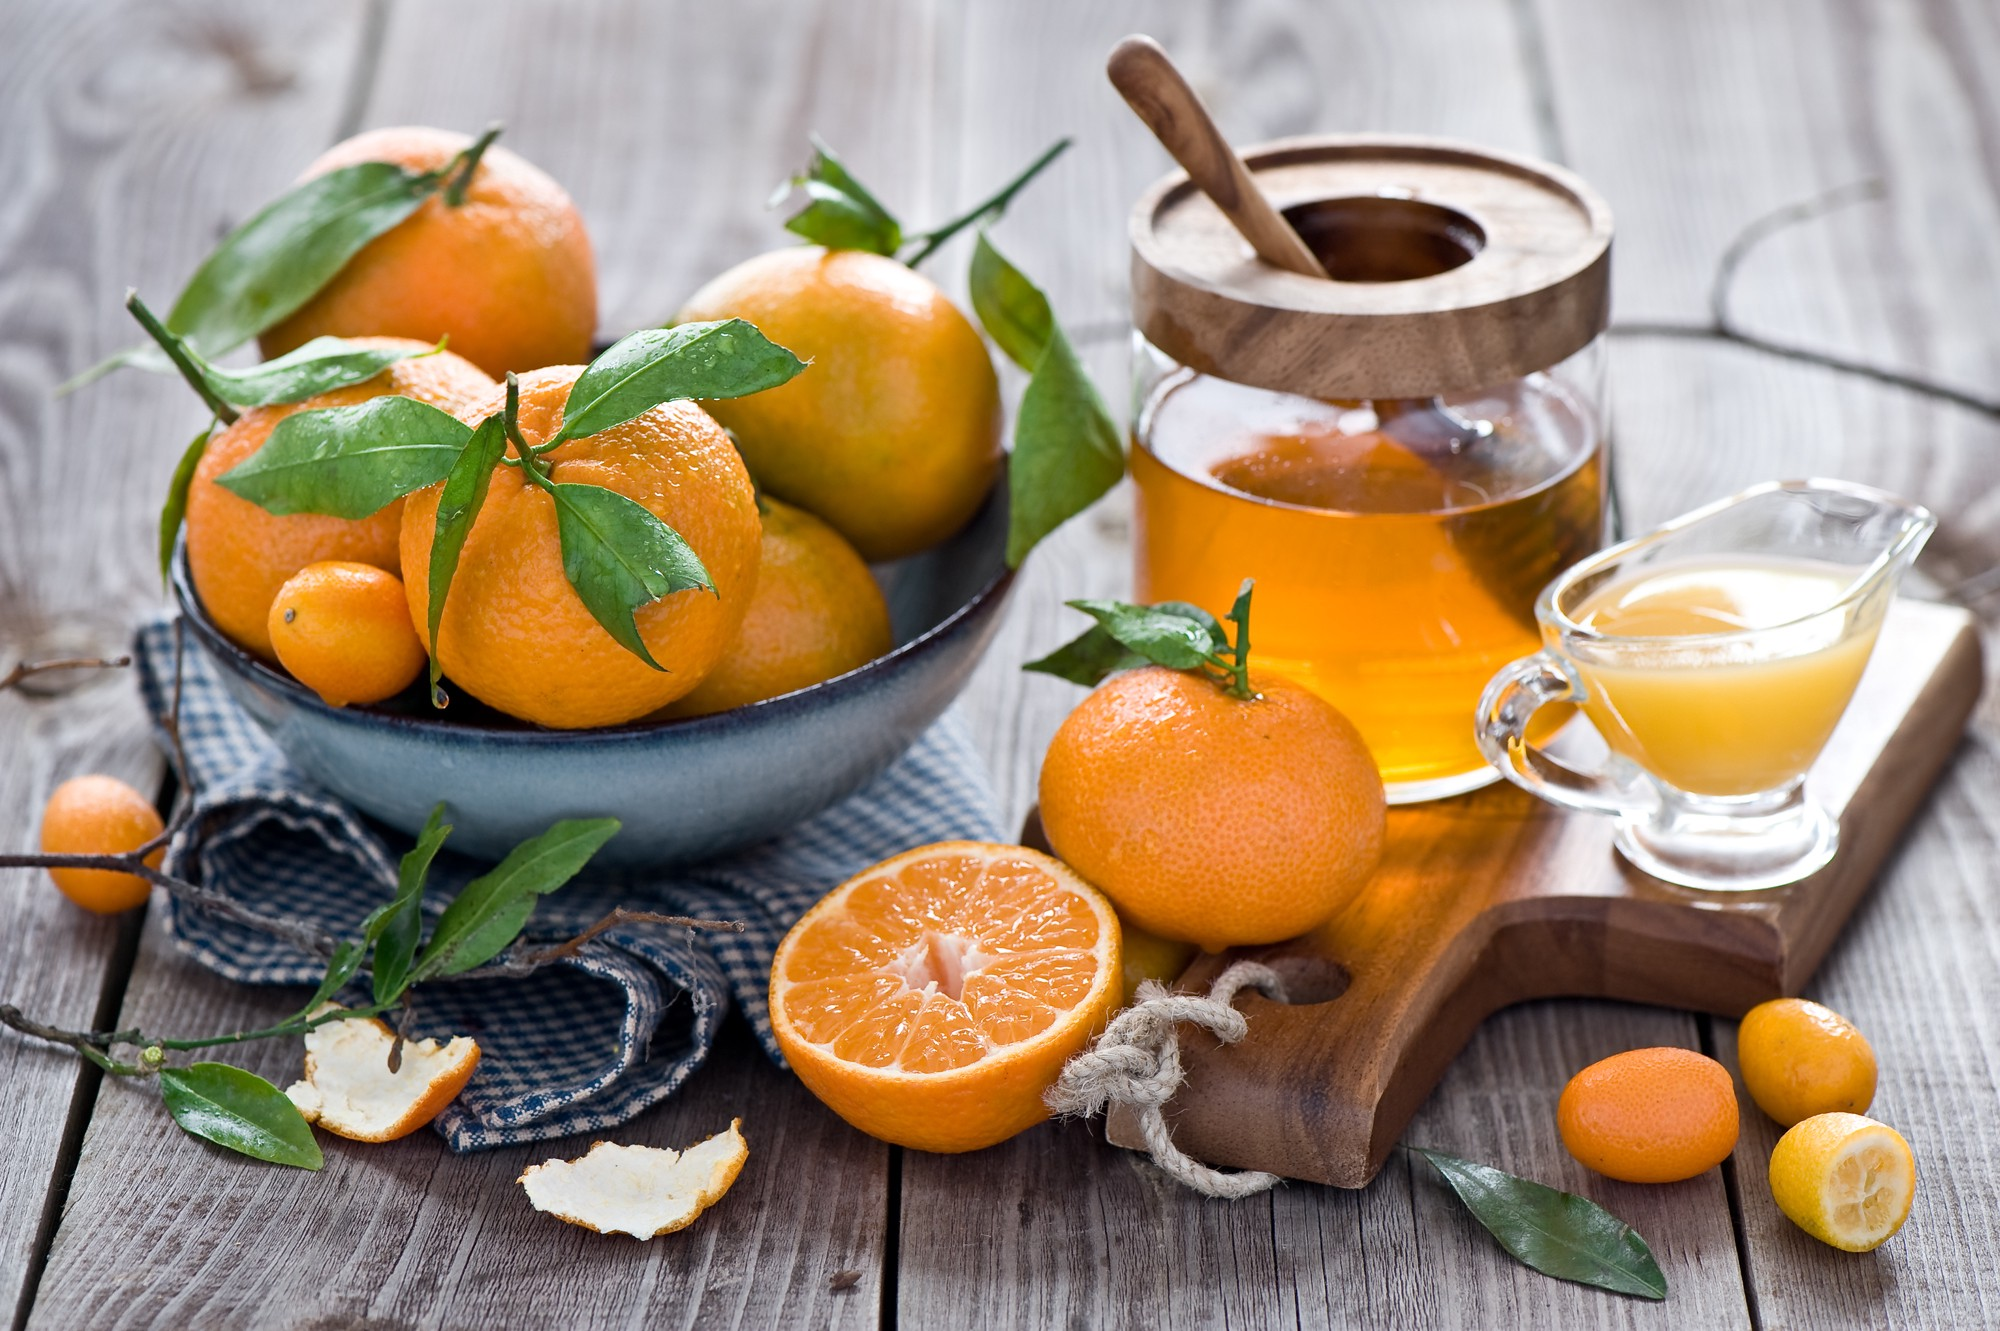 Fruit Juice Consumption May Cause Diabetes Obesity And Heart